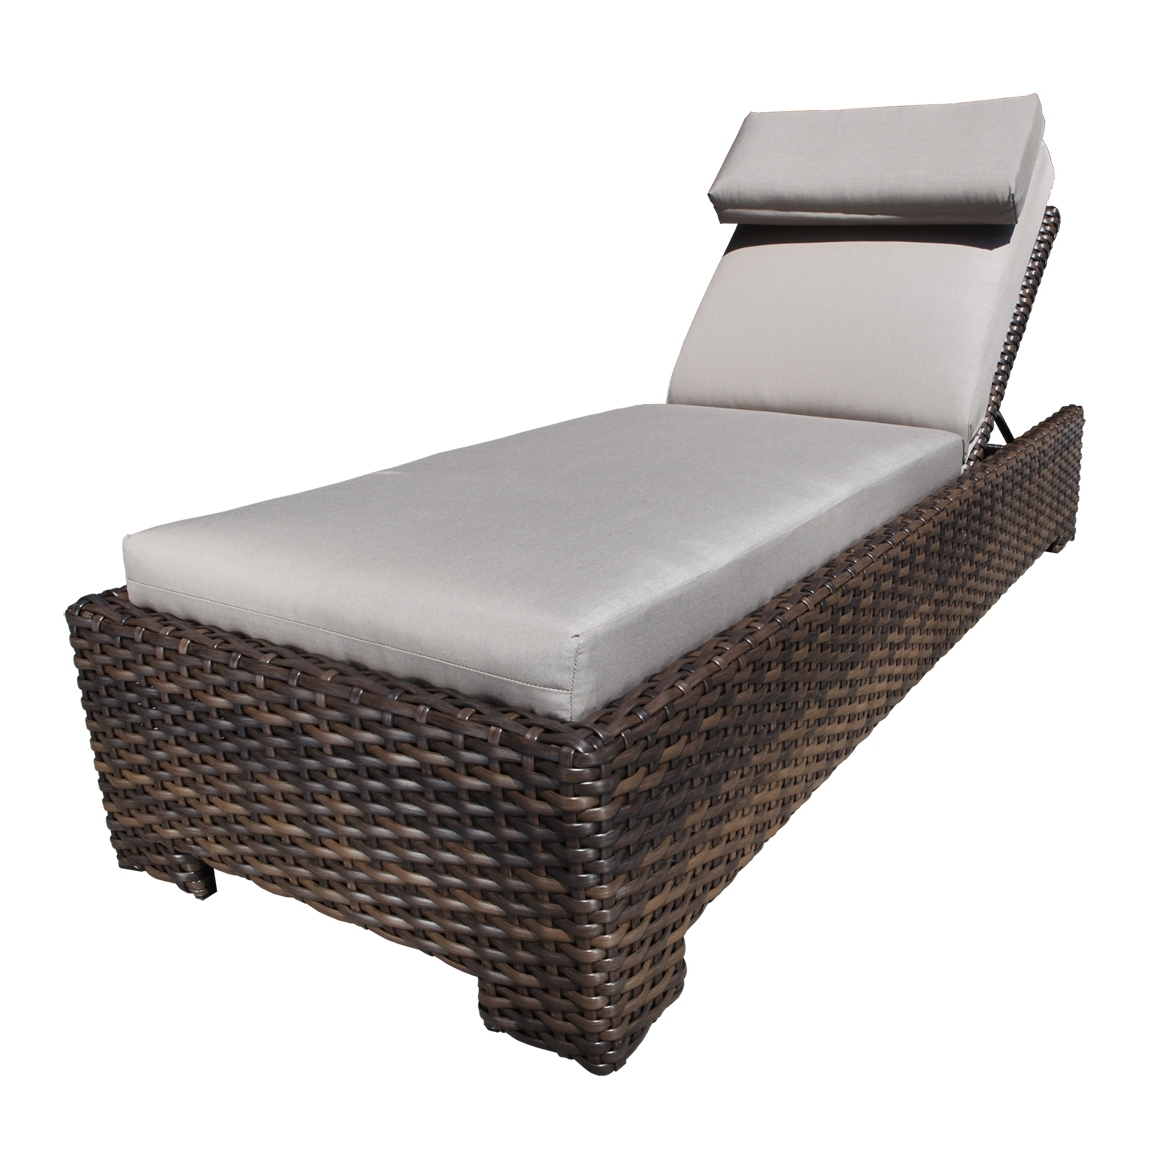 Best Chaise Lounge Chairs 2019 Popular Chaise Lounge Chairs In Canada